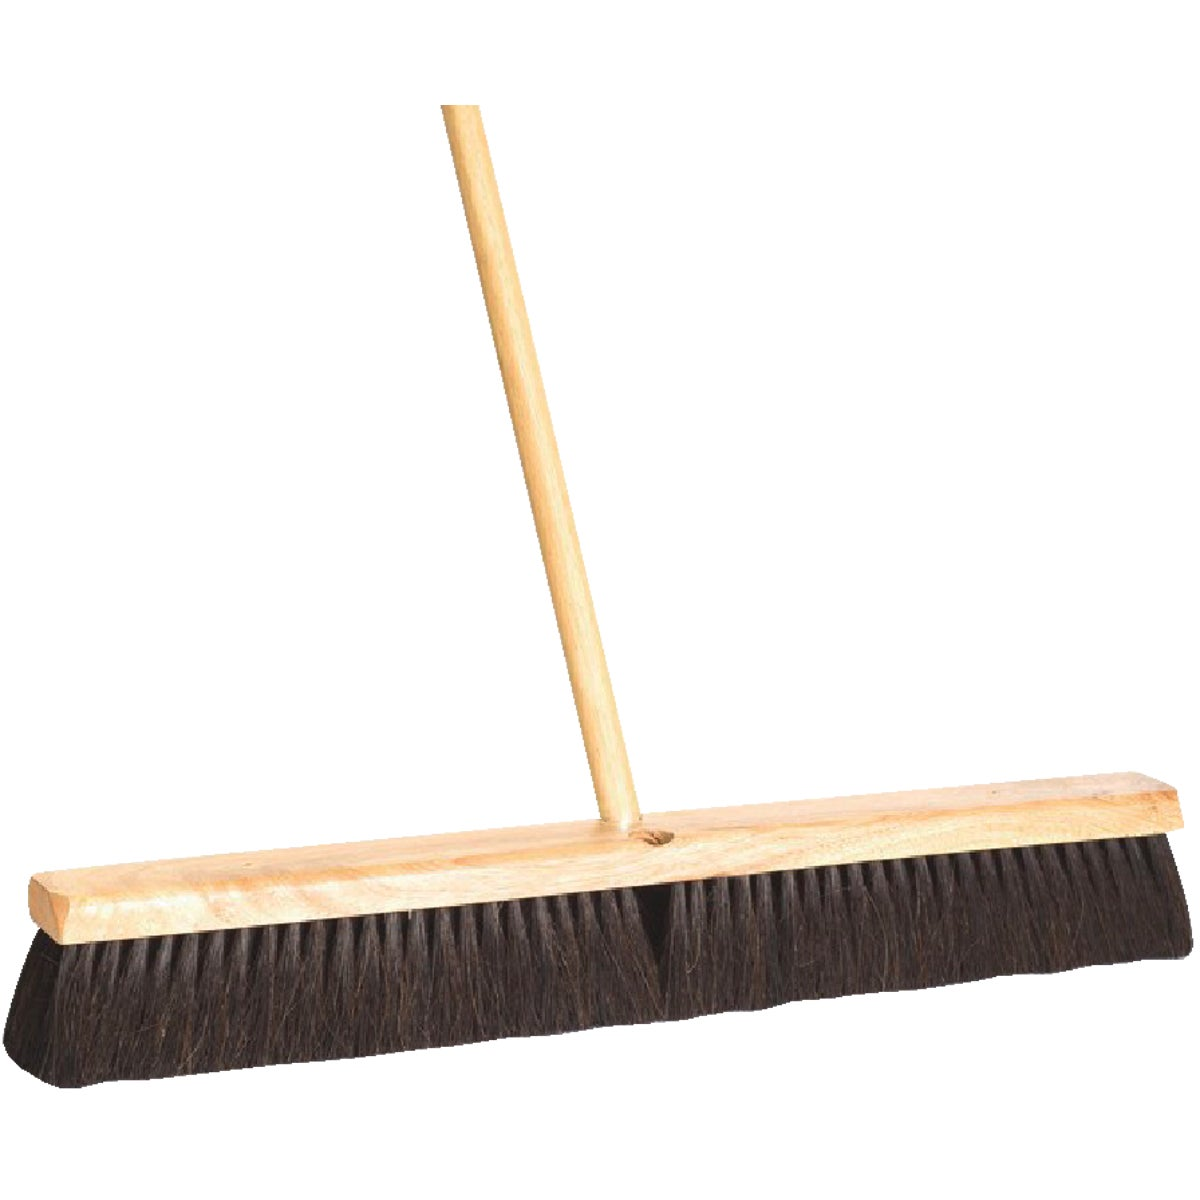 "24"" TAMPICO PUSH BROOM - 10663 by D Q B Ind"